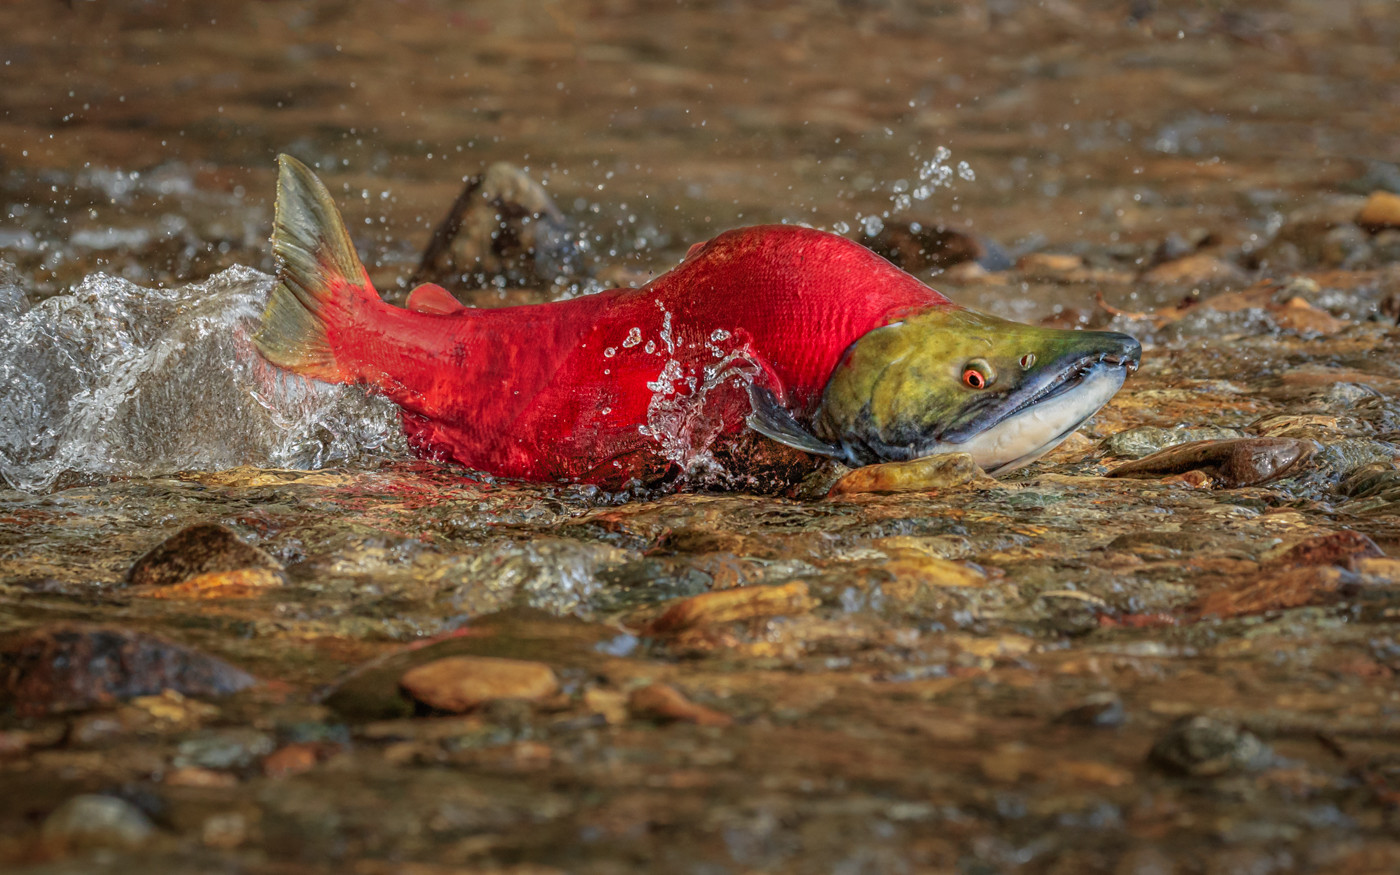 20 (PRINT) MALE SOCKEYE SALMON ON ITS LAST JOURNEY UPSTREAM TO SPAWN  by David Godfrey